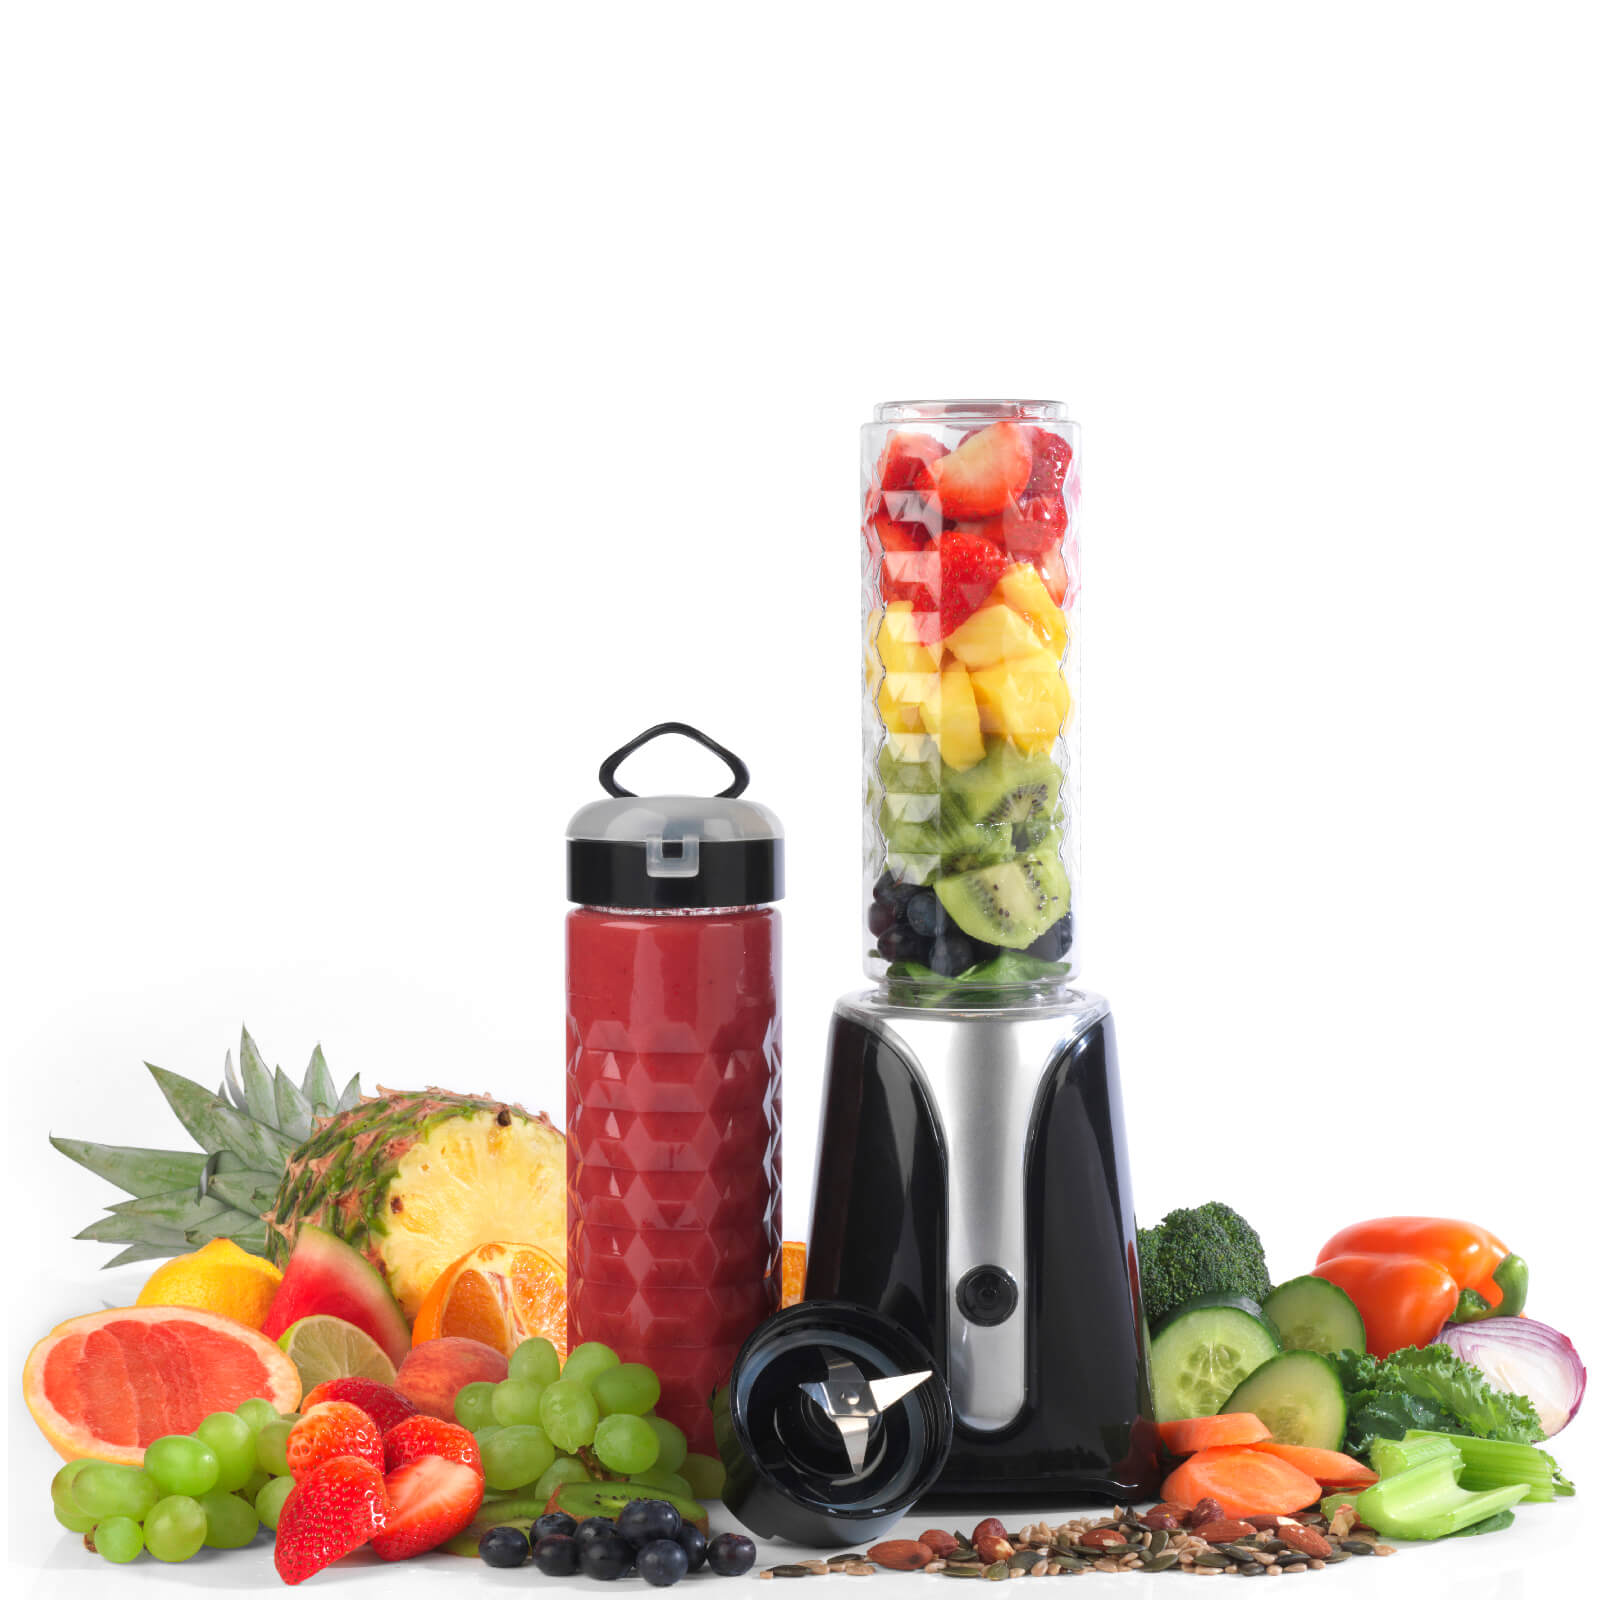 Salter EK2312 Blender To Go - Black/Silver